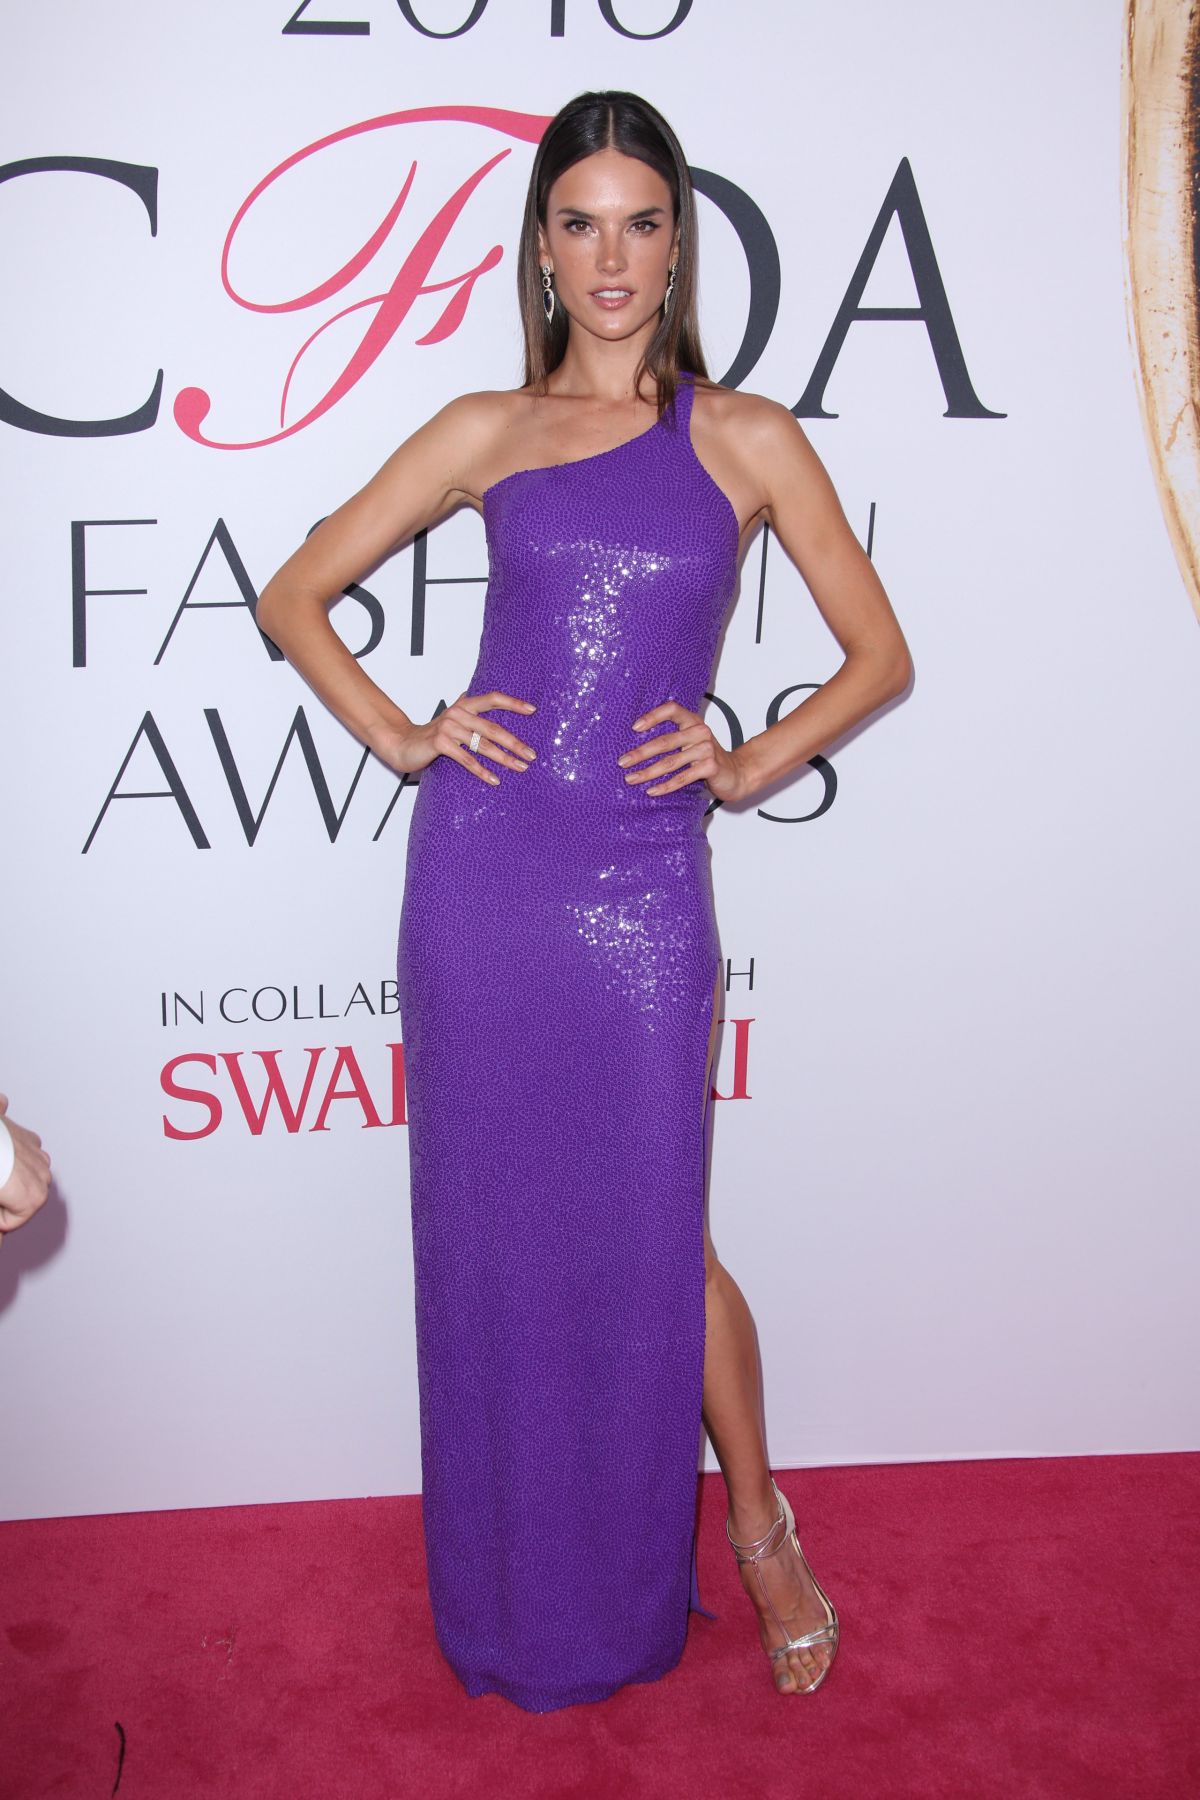 ALESSANDRA AMBROSIO at CFDA Fashion Awards in New York 06/06/2016